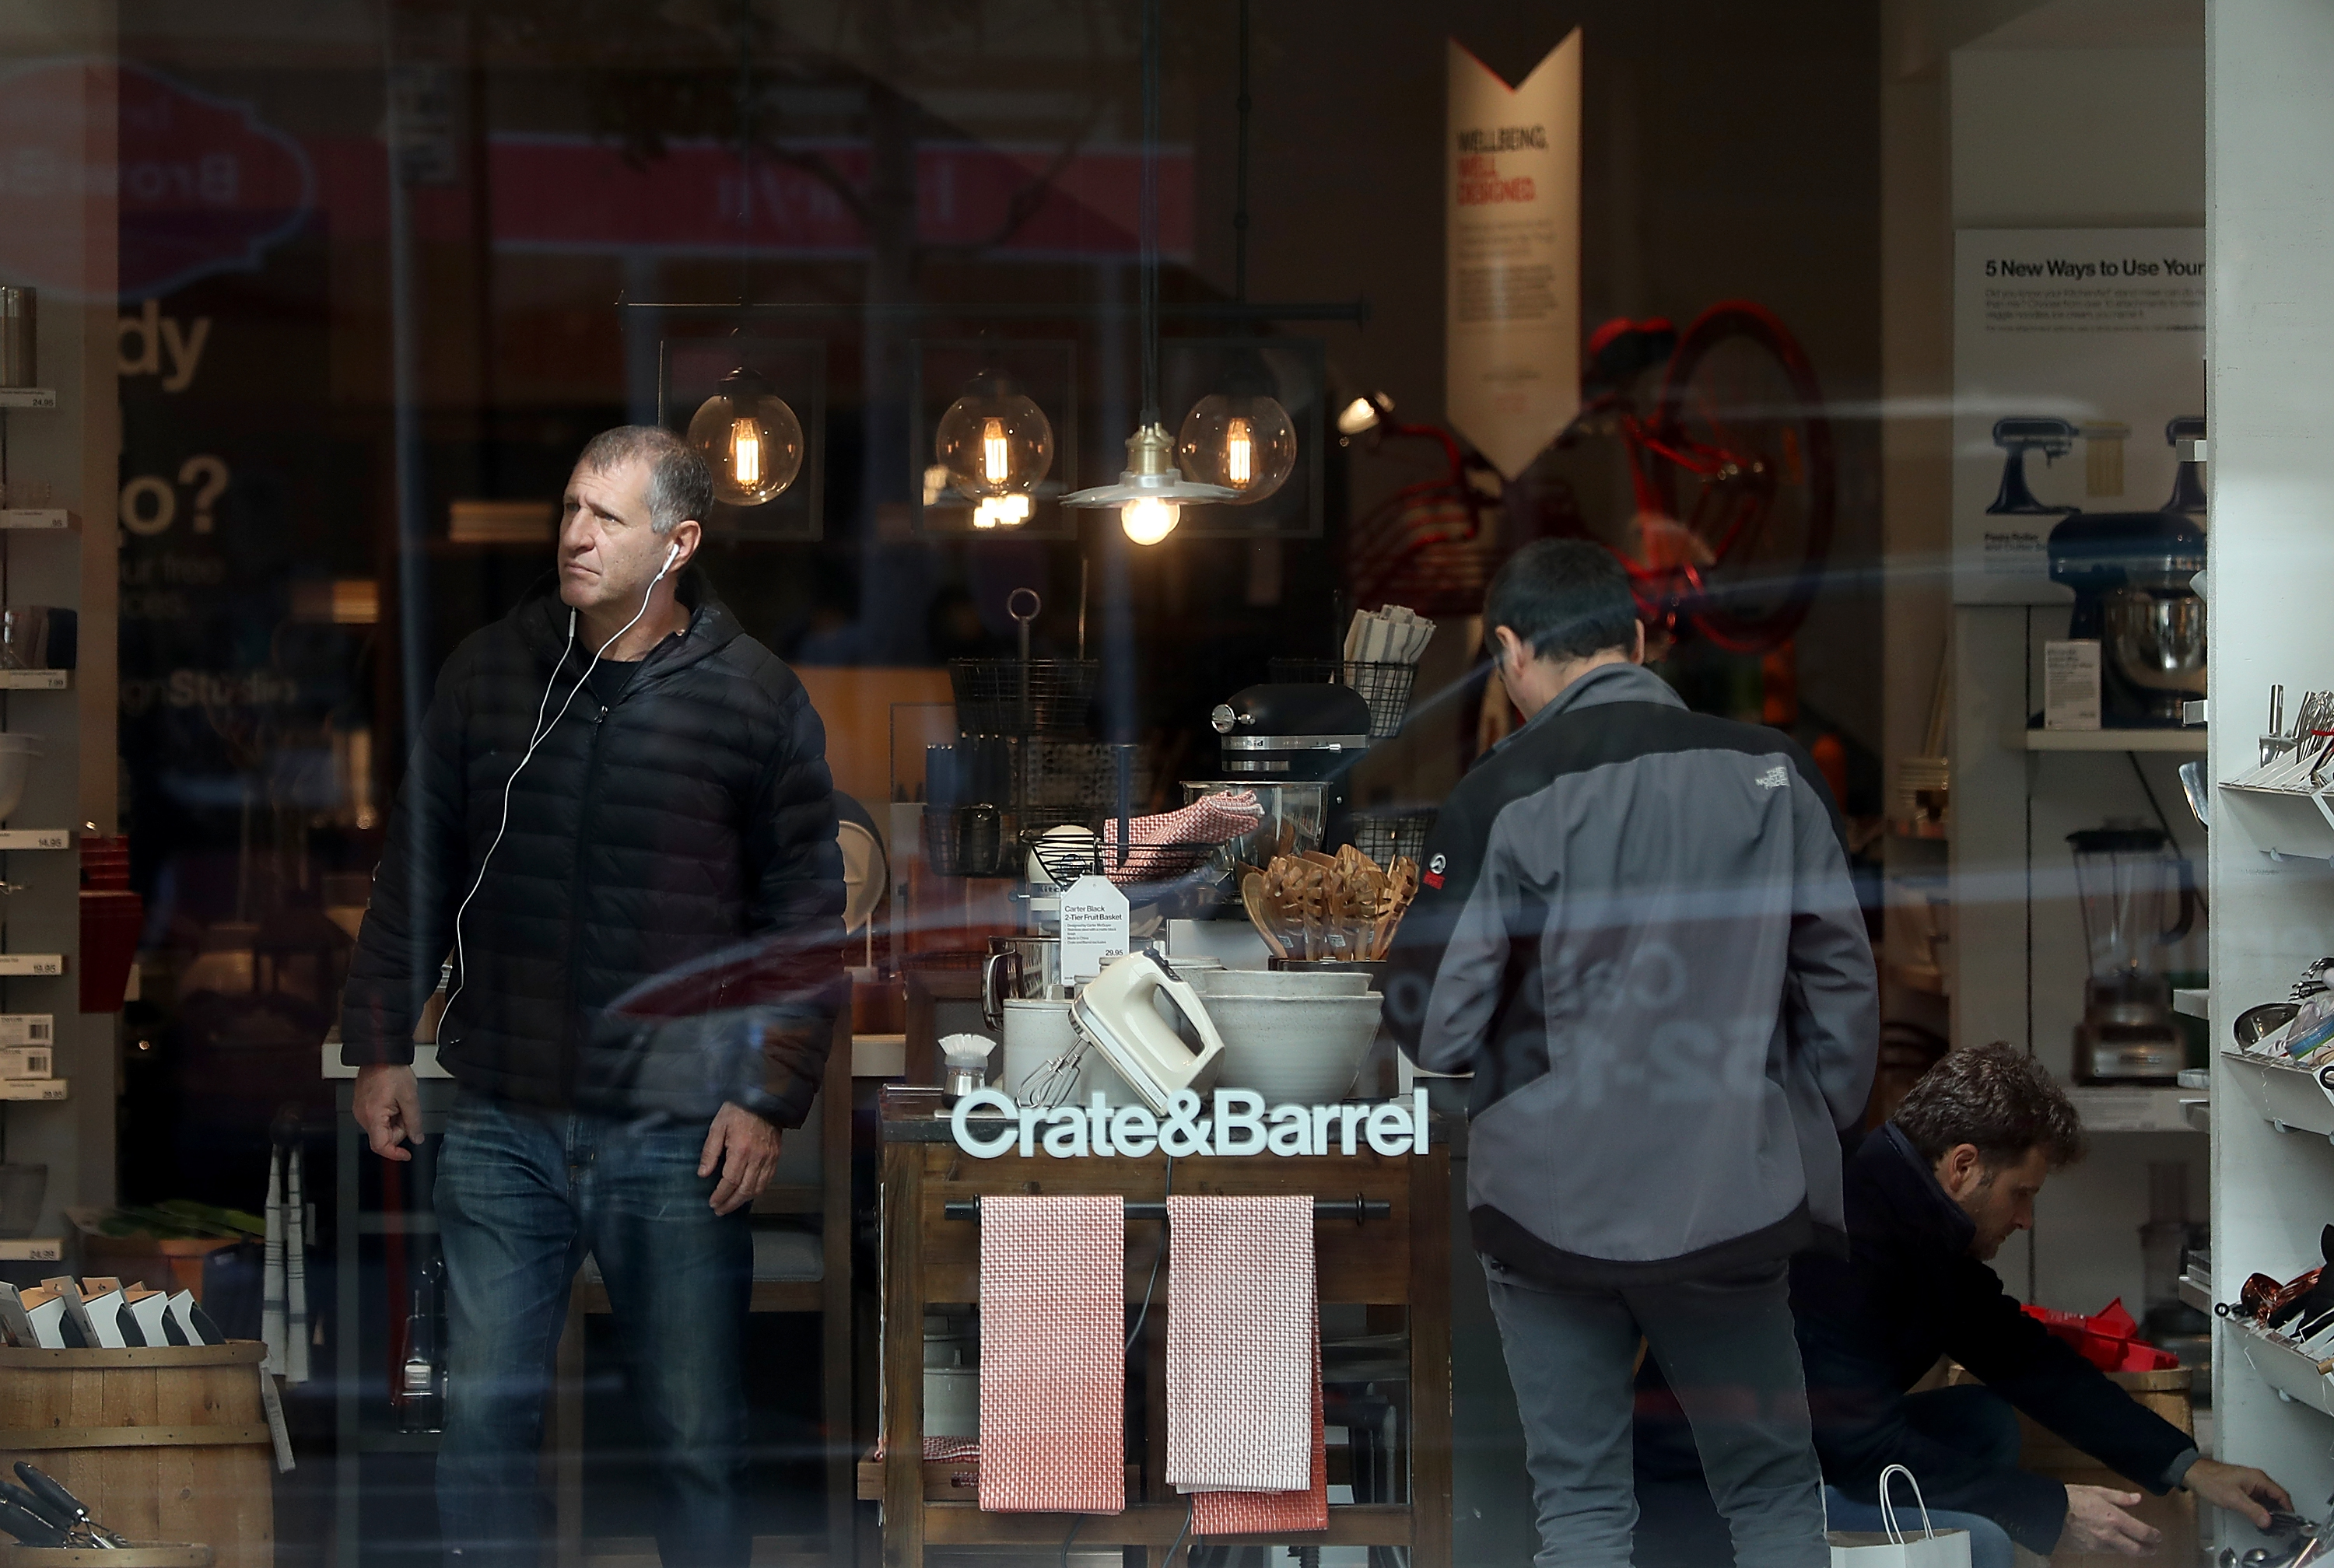 SAN FRANCISCO, CA - FEBRUARY 27: Customers shop inside of a Crate and Barrel store on February 27, 2018 in San Francisco, California. The U.S. consumer confidence index surged to 130.80 in February, its highest level since November 2000.